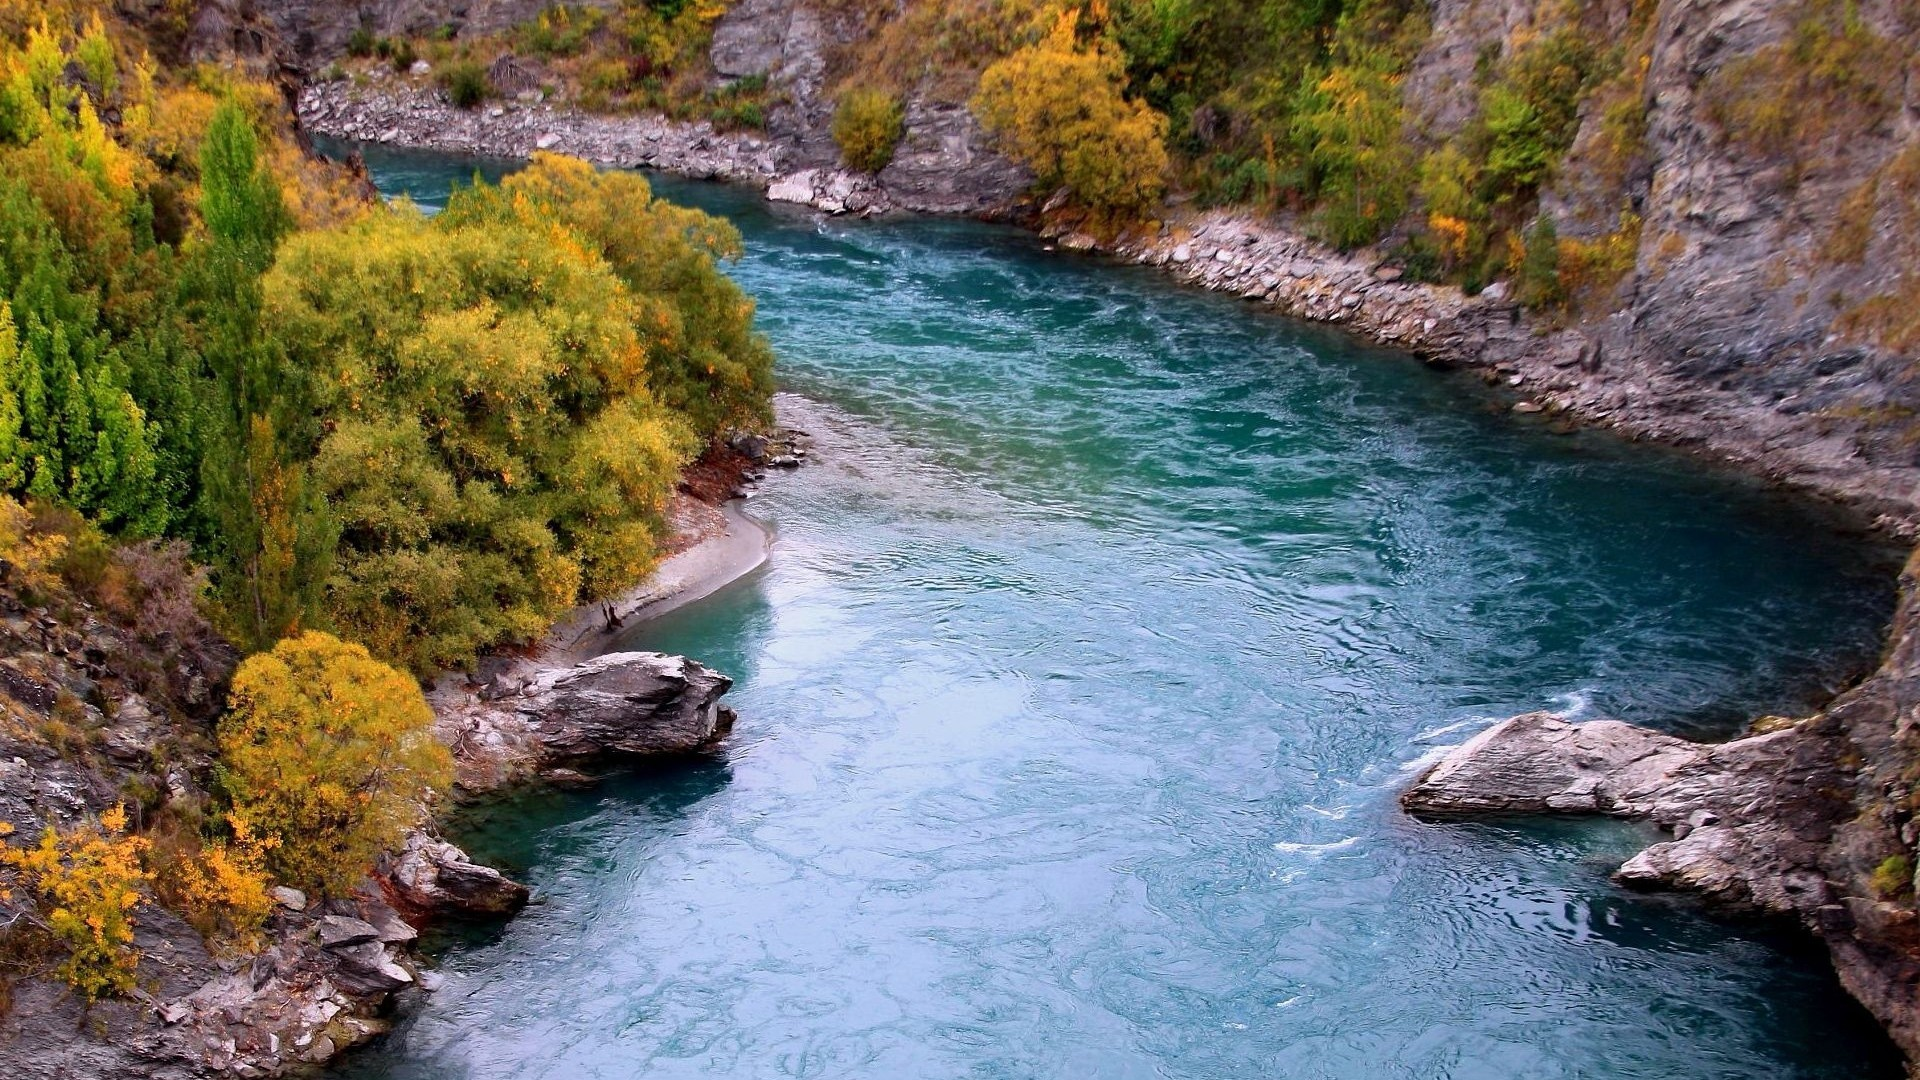 River Wallpapers Artistic Hq River Pictures 4k Wallpapers 2019